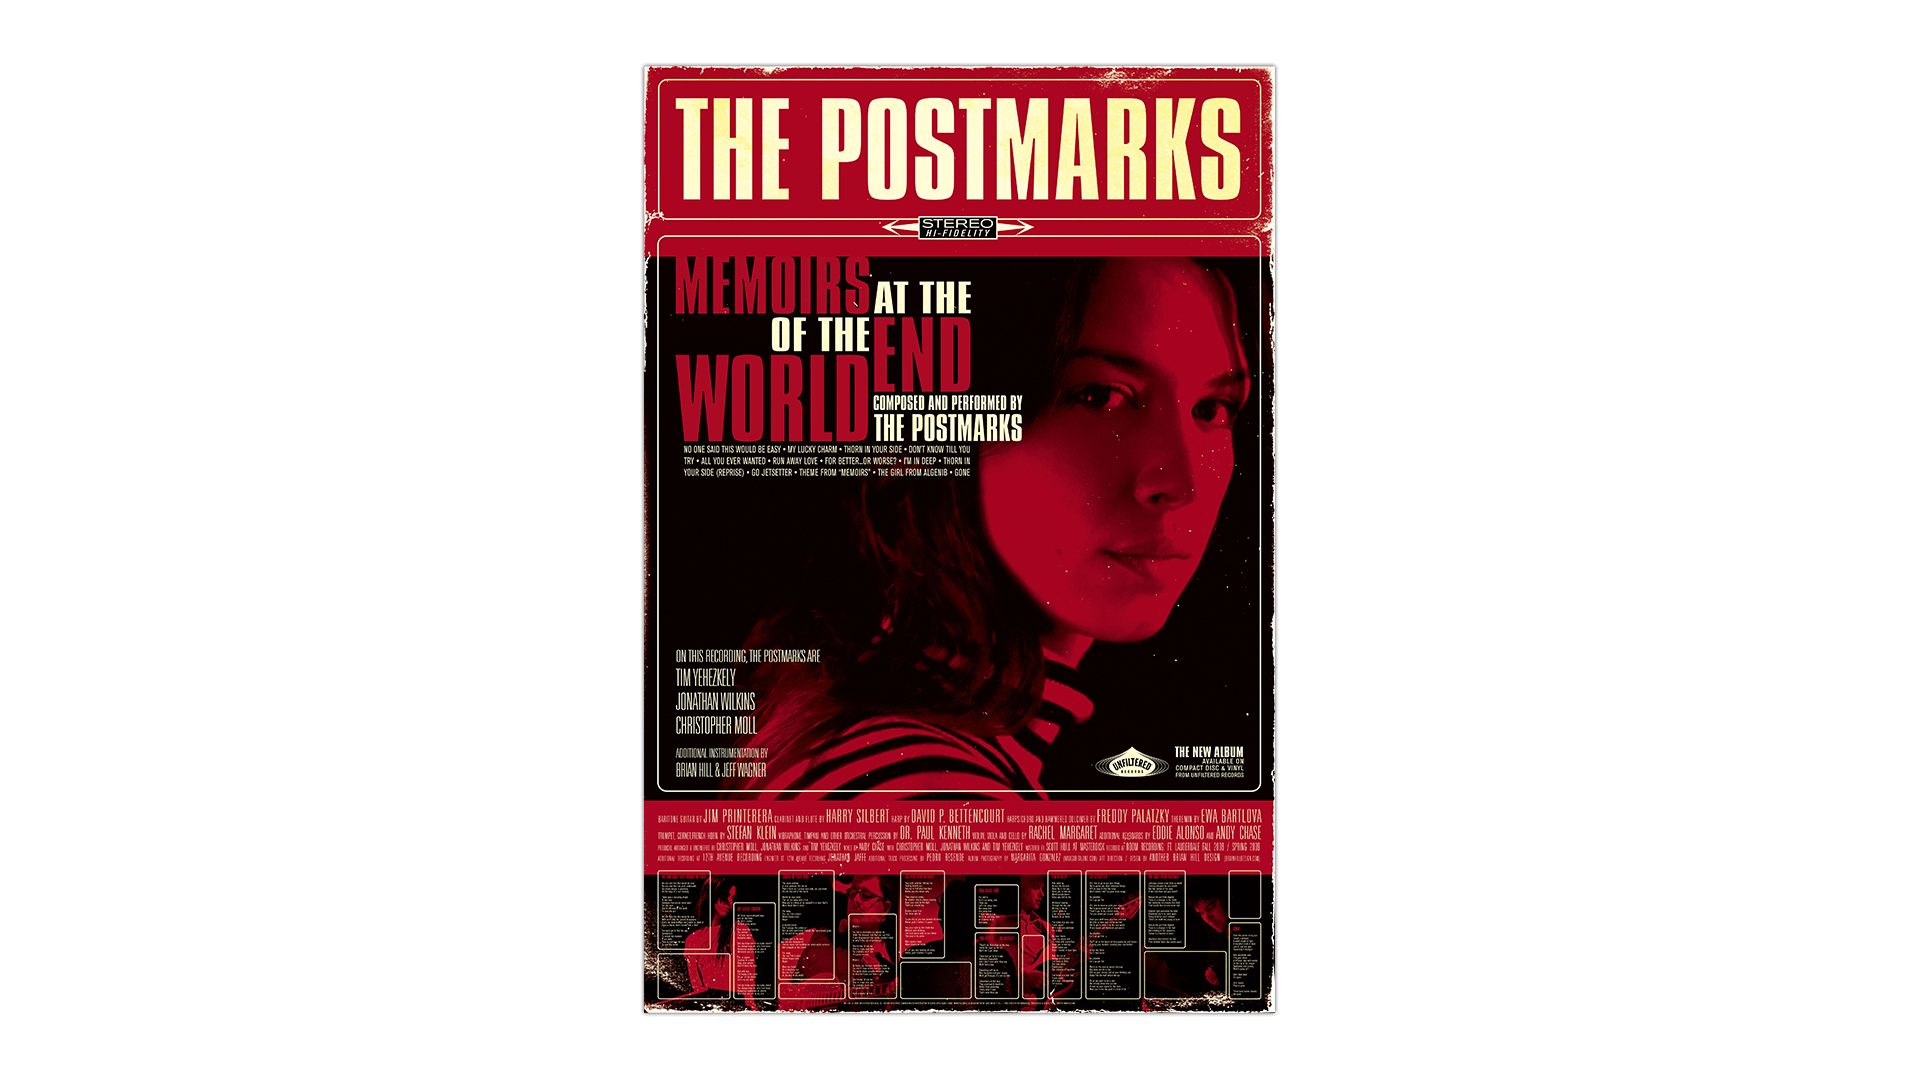 The Postmarks Memoirs At The End Of The World